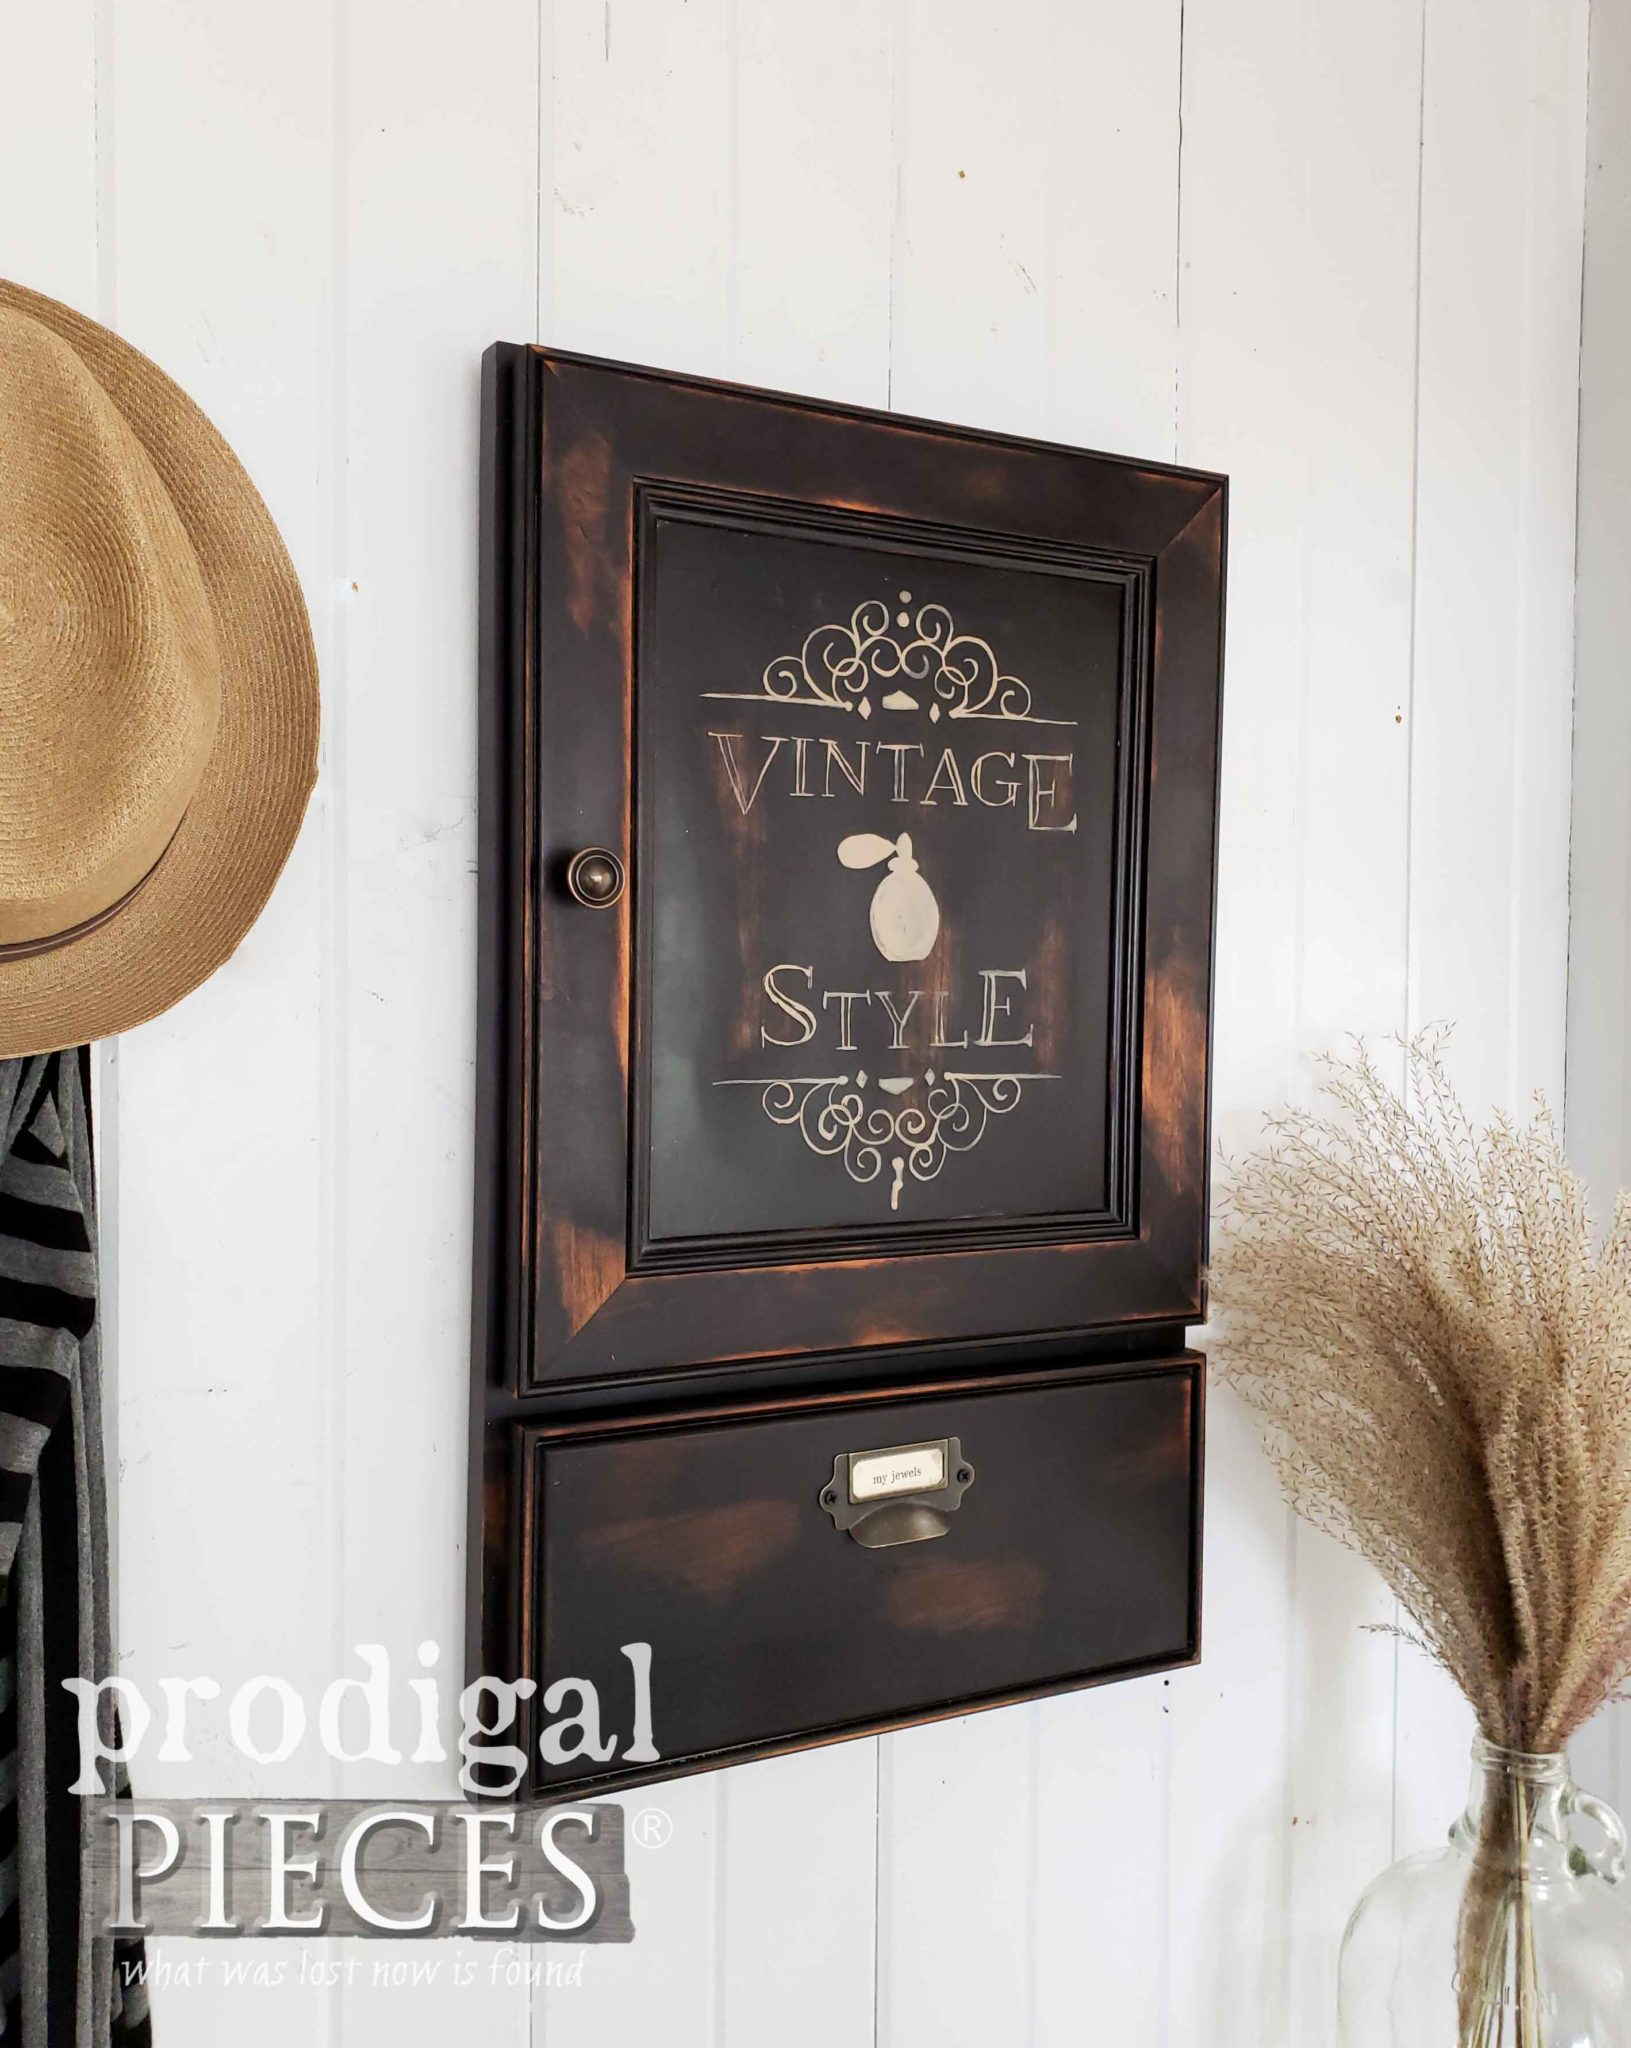 Industrial Vintage Style Jewelry Cabinet with Oodles of Storage | Created by Larissa of Prodigal Pieces | prodigalpieces.com